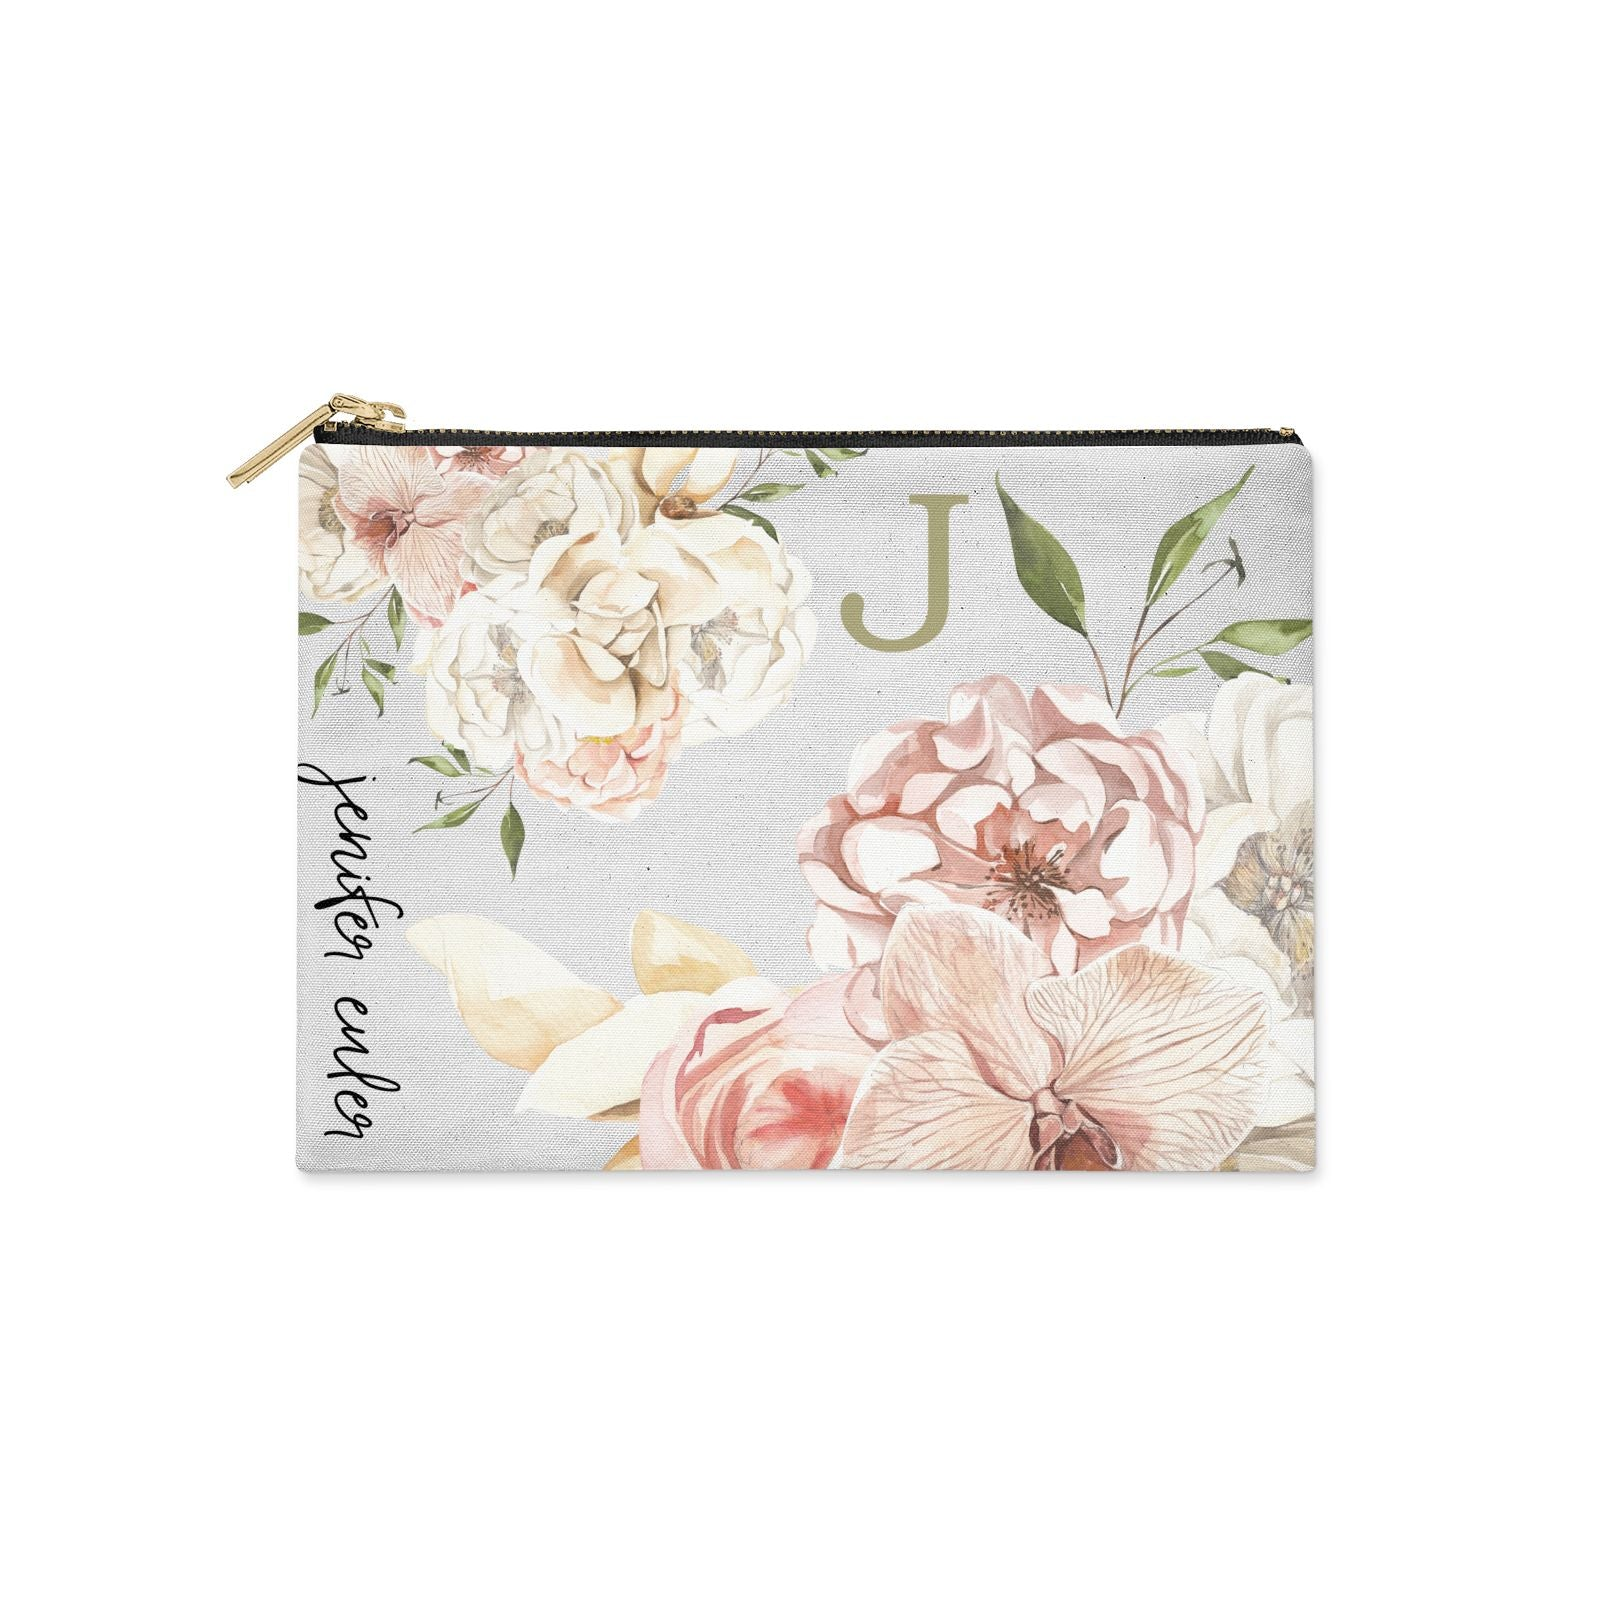 Spring Flowers Personalised Name Clutch Bag Zipper Pouch